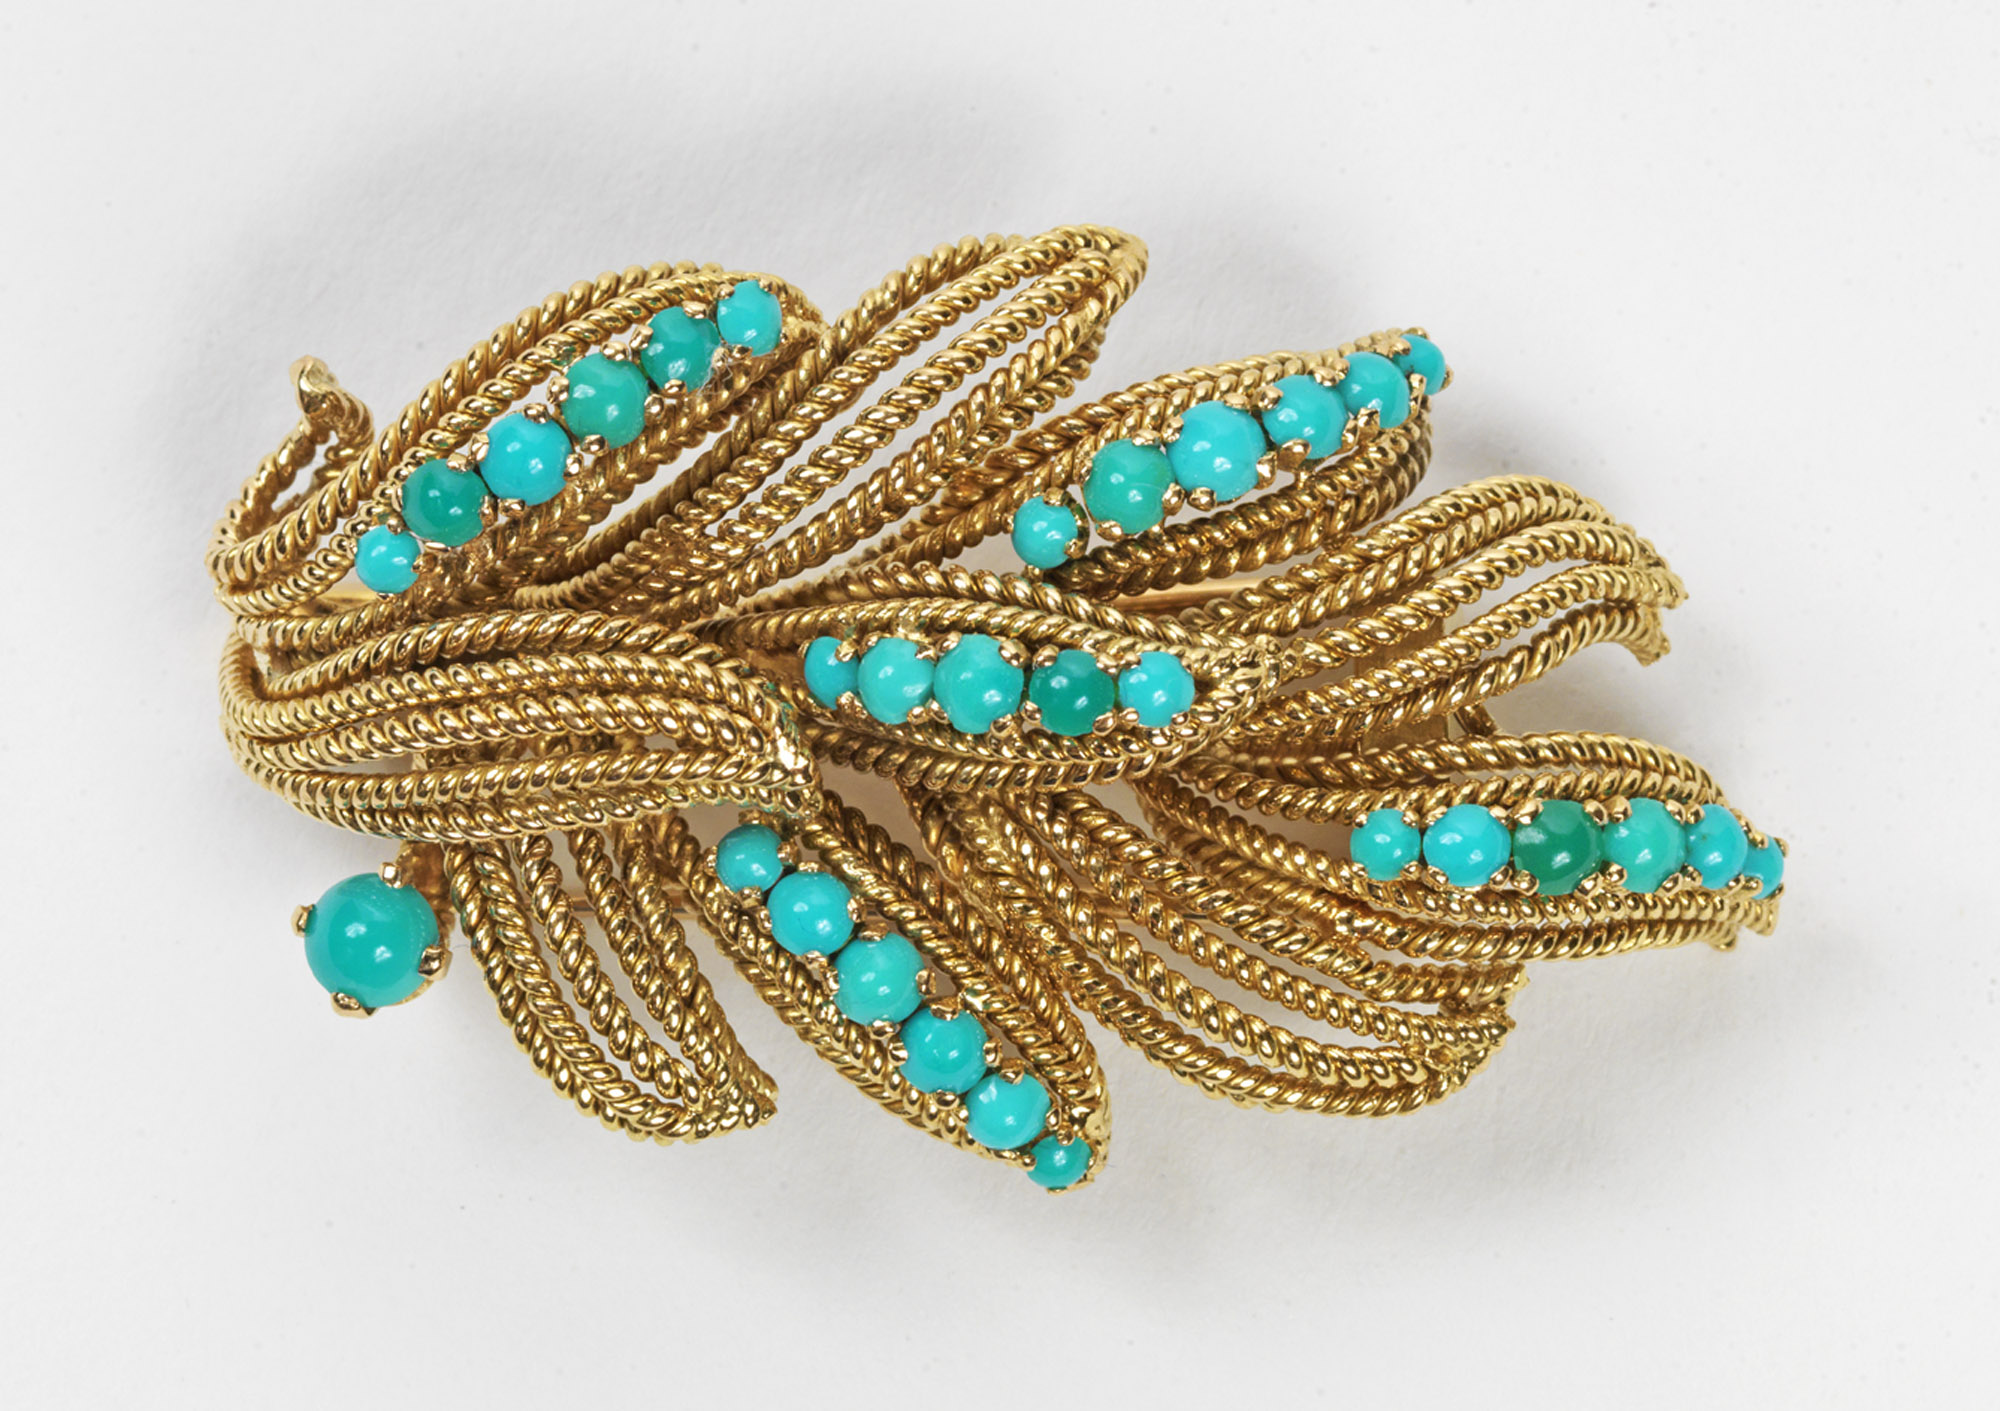 Vourakis - Rope-twist leaves set with turquoise brooch